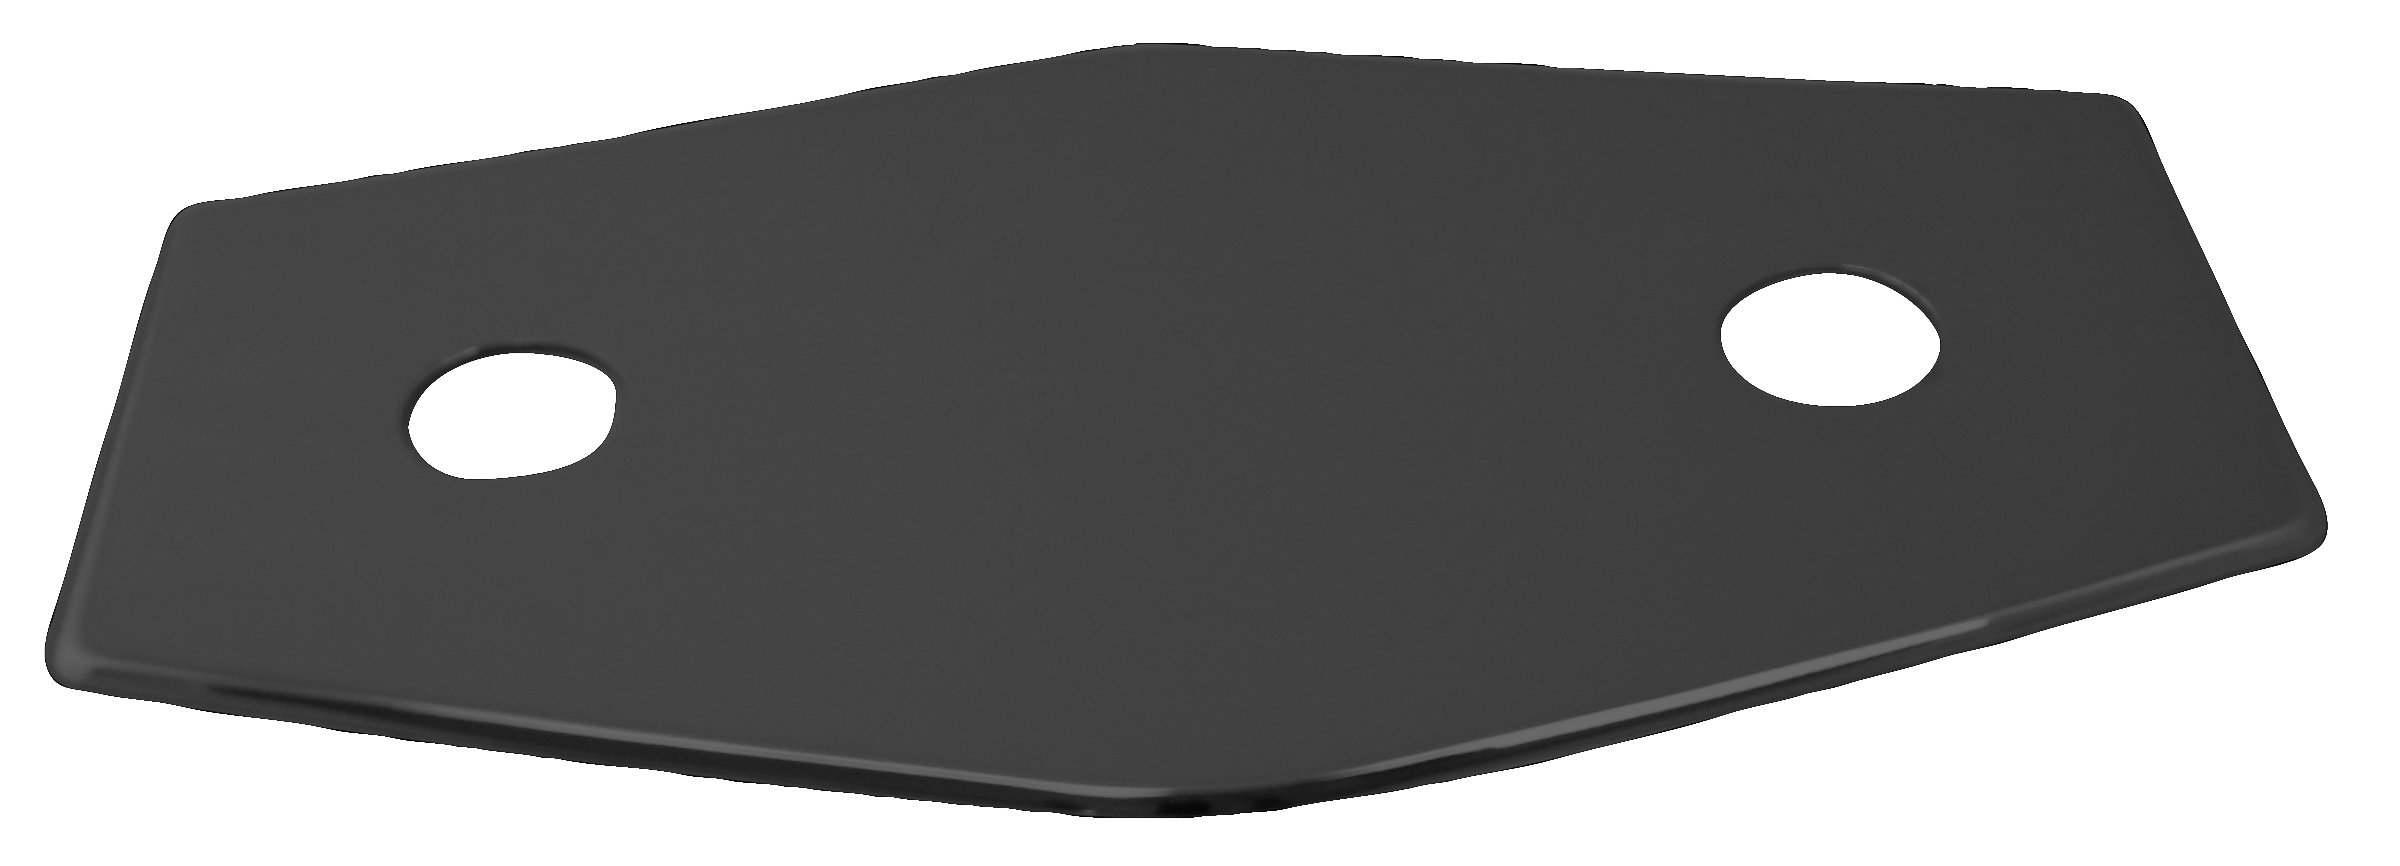 Westbrass Two-Hole Remodel Plate, Matte Black, D504-62 by Westbrass